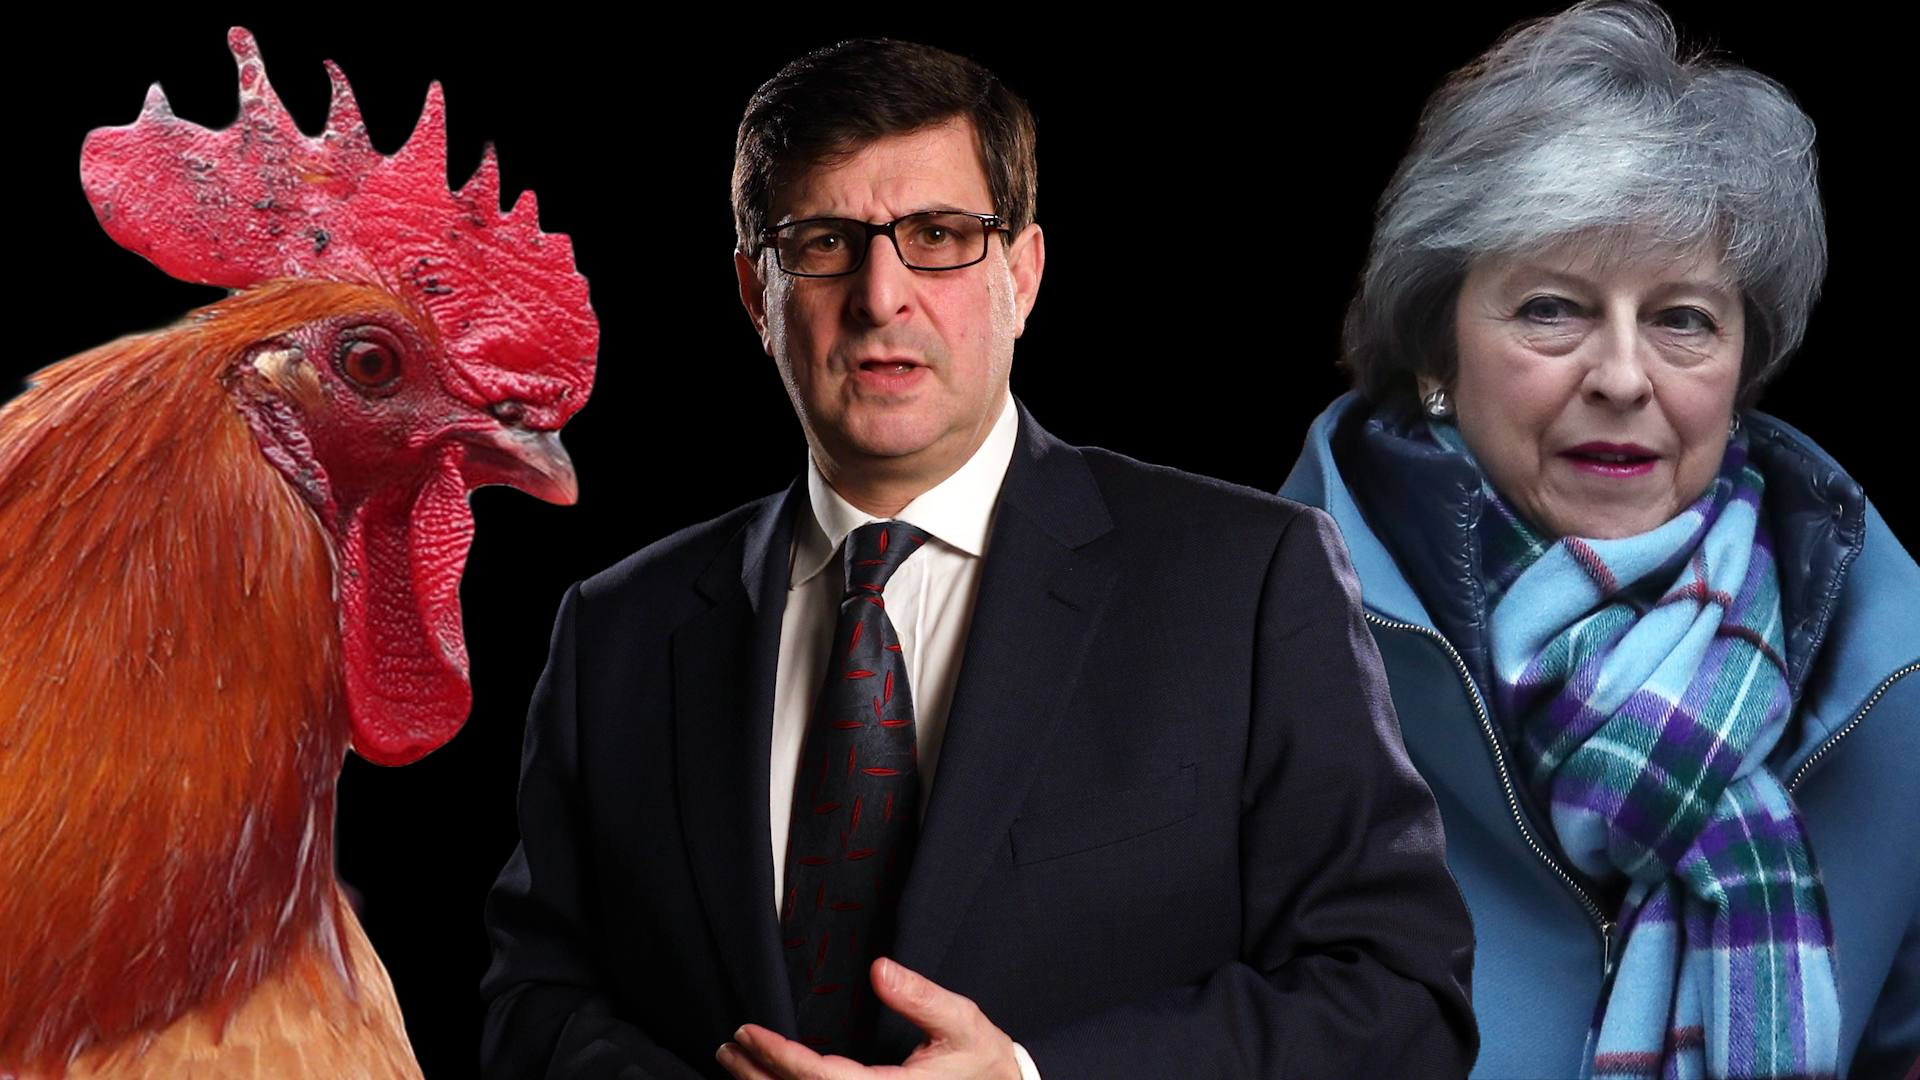 Brexit: Theresa May's dangerous game of political chicken